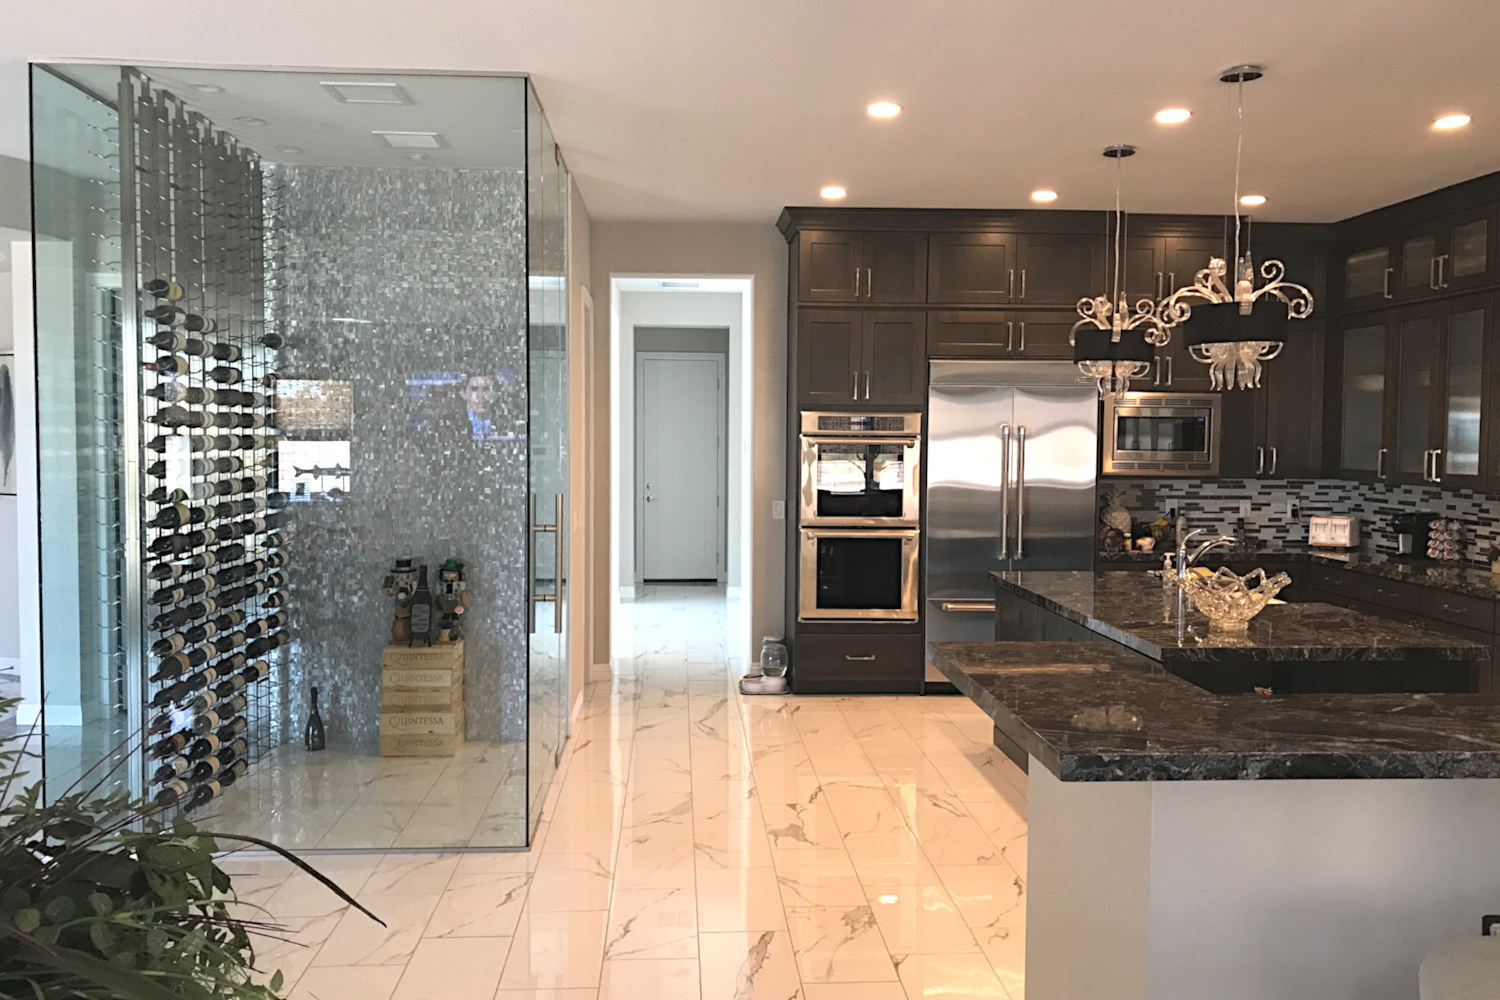 kitchen with dark cabinets, black grnite countertops, walk-in glass wine cooler,  polished floor.